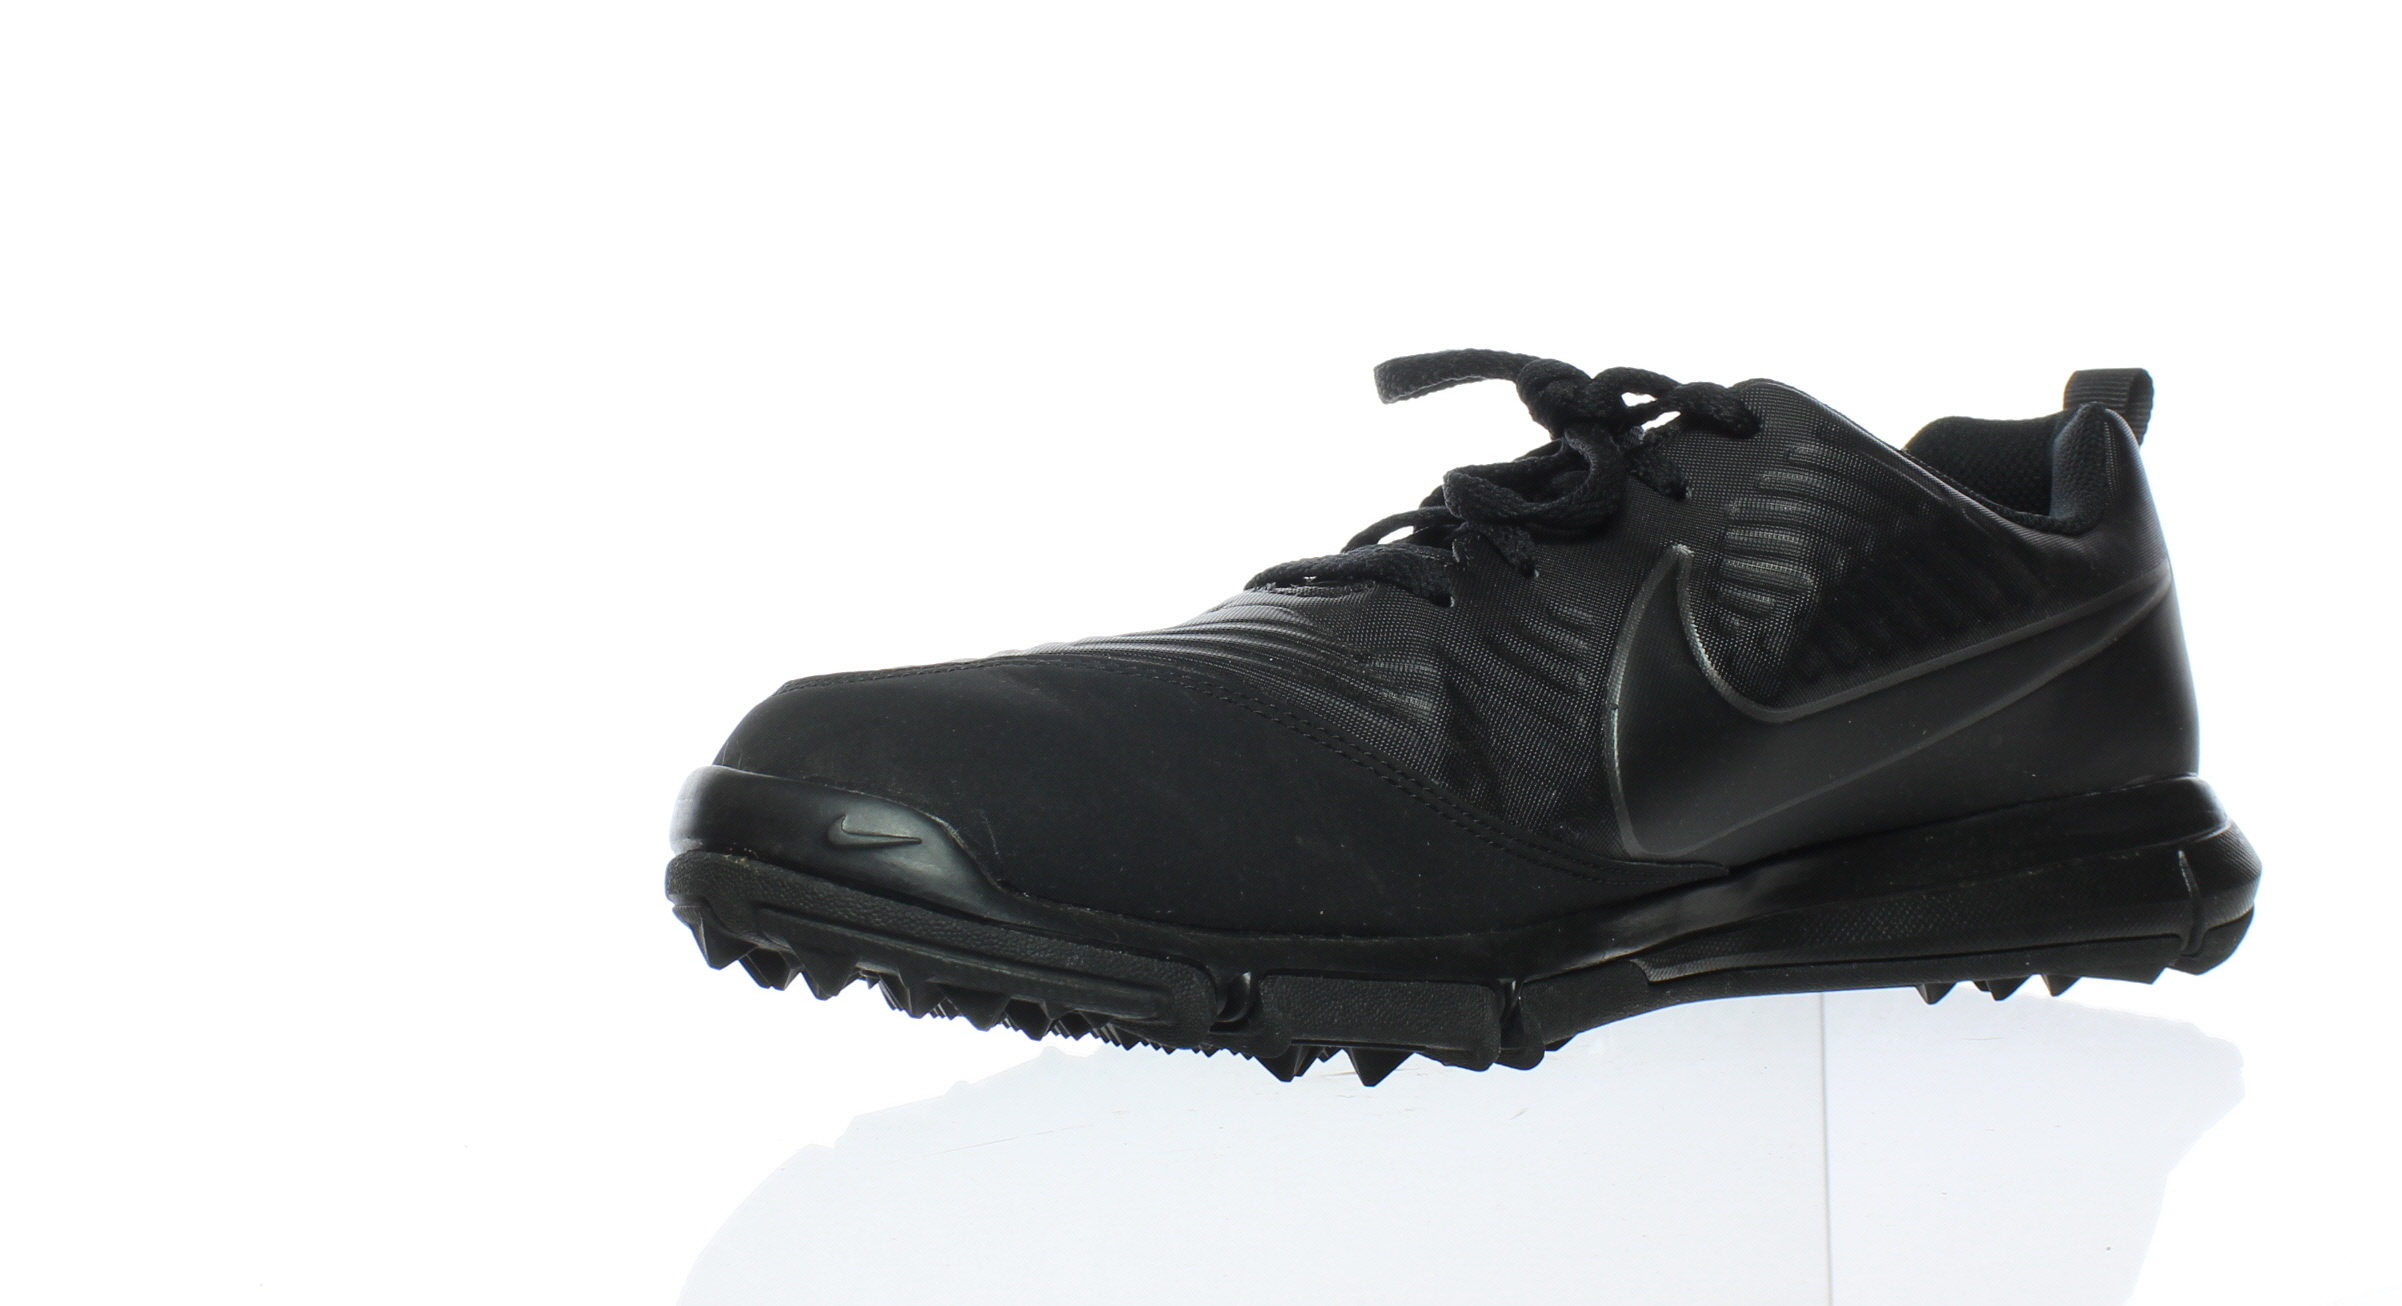 brand new be6a8 cd46d ... Nike Mens Mens Mens Black Running Shoes Size 9.5 (13148) abf21a ...